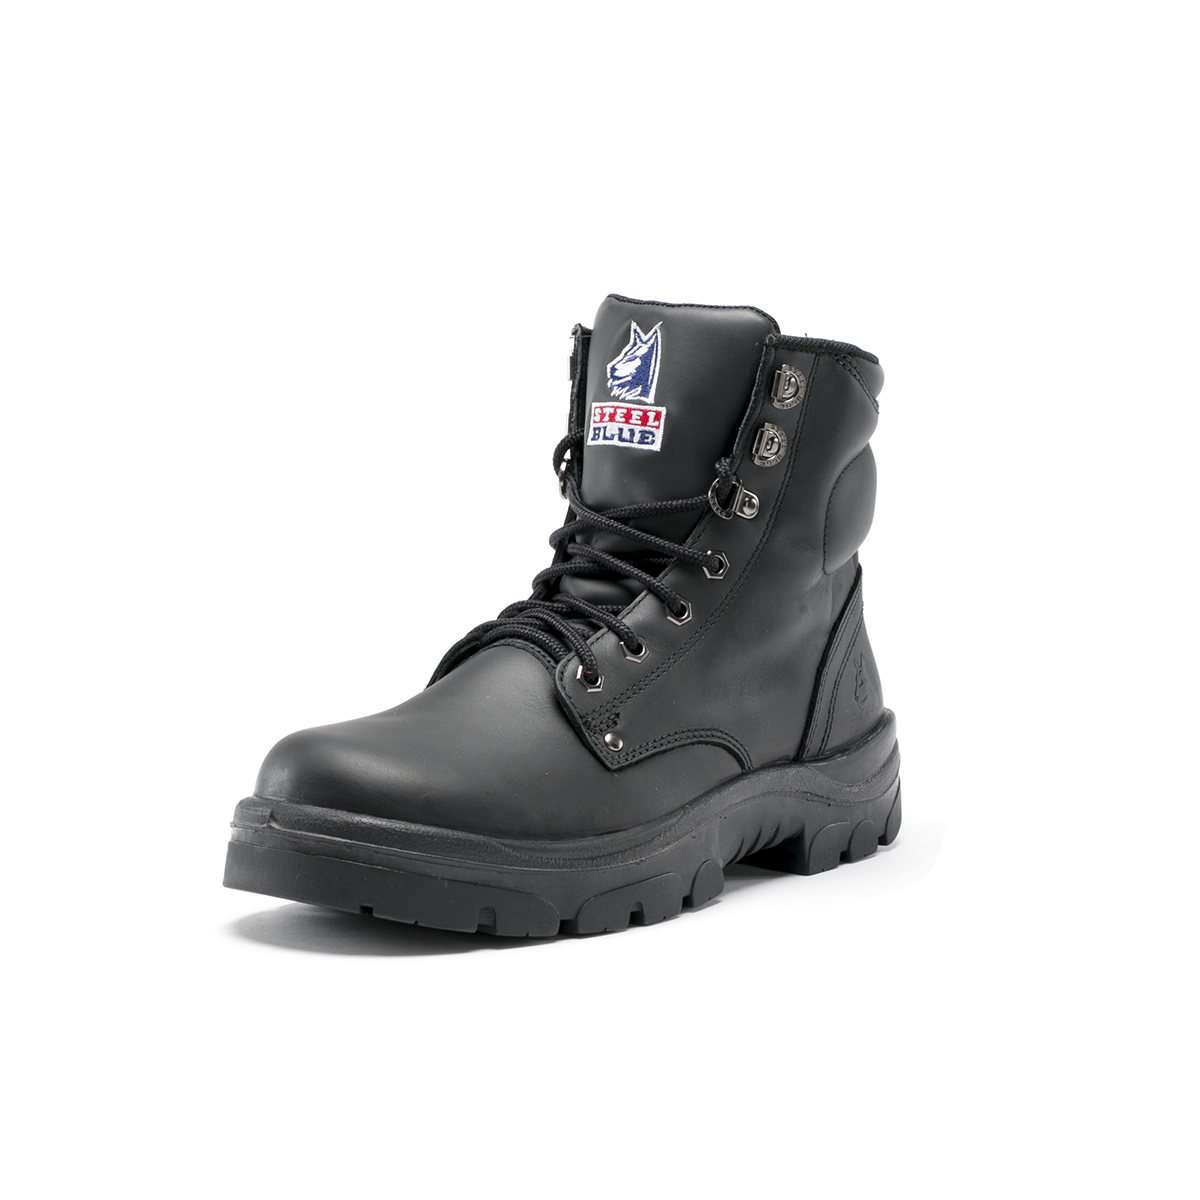 Steel Blue Argyle Safety Boots w/ Bump Cap 332102